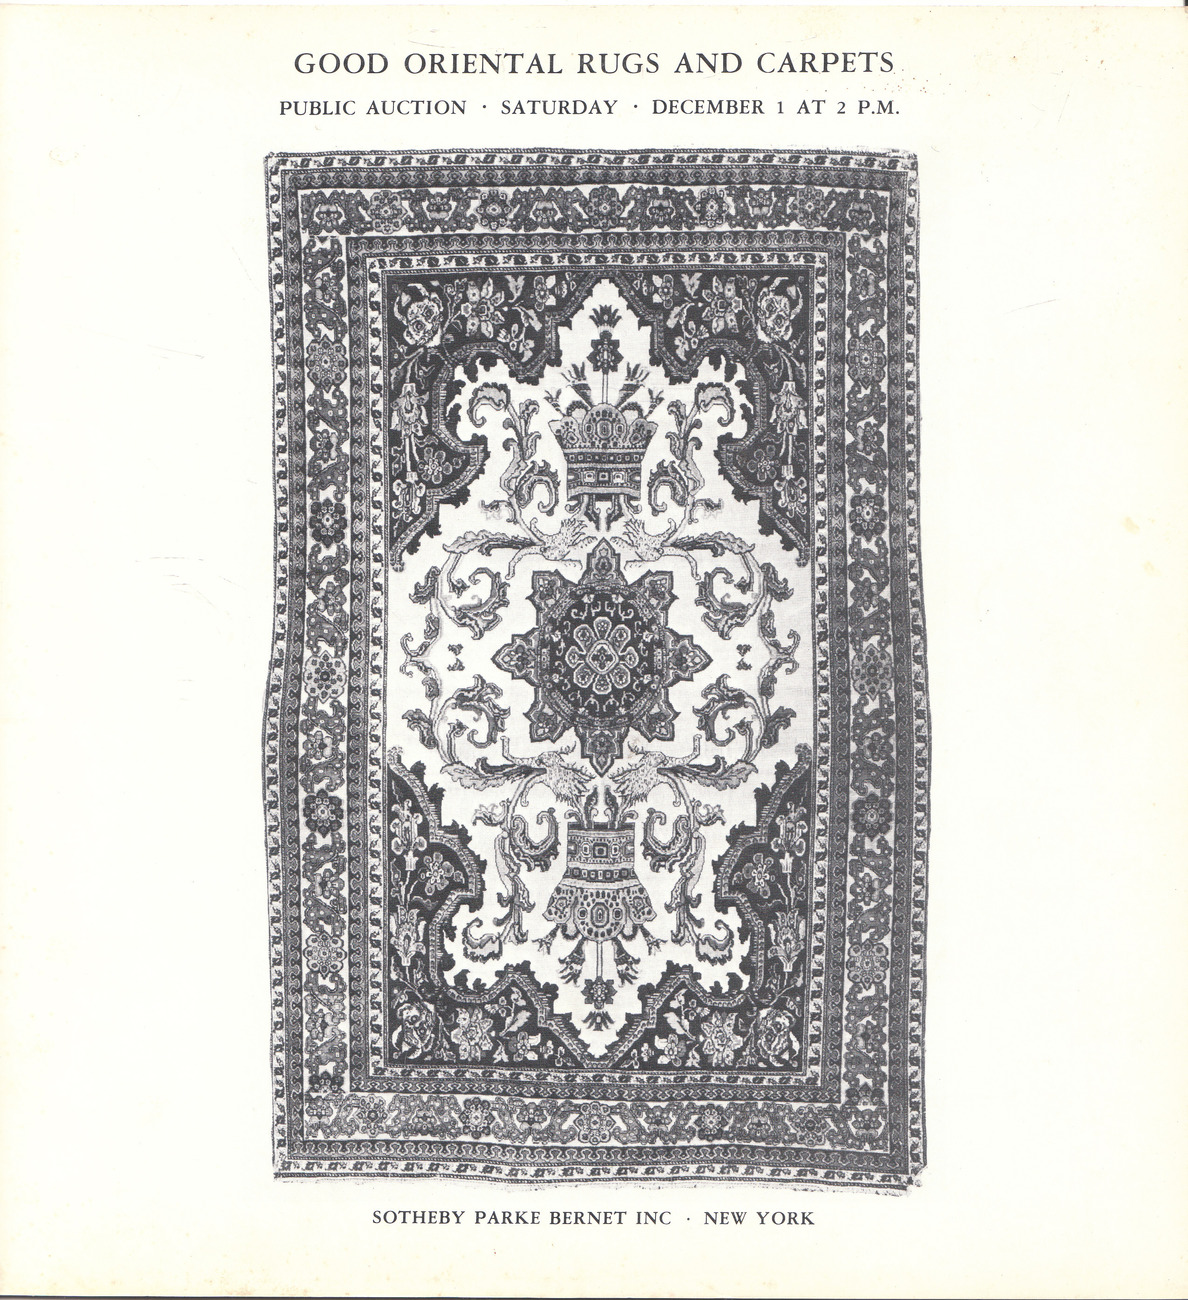 Illustrated Auction Catalog Good Oriental Rugs and Carpets 1973 Prices Realized